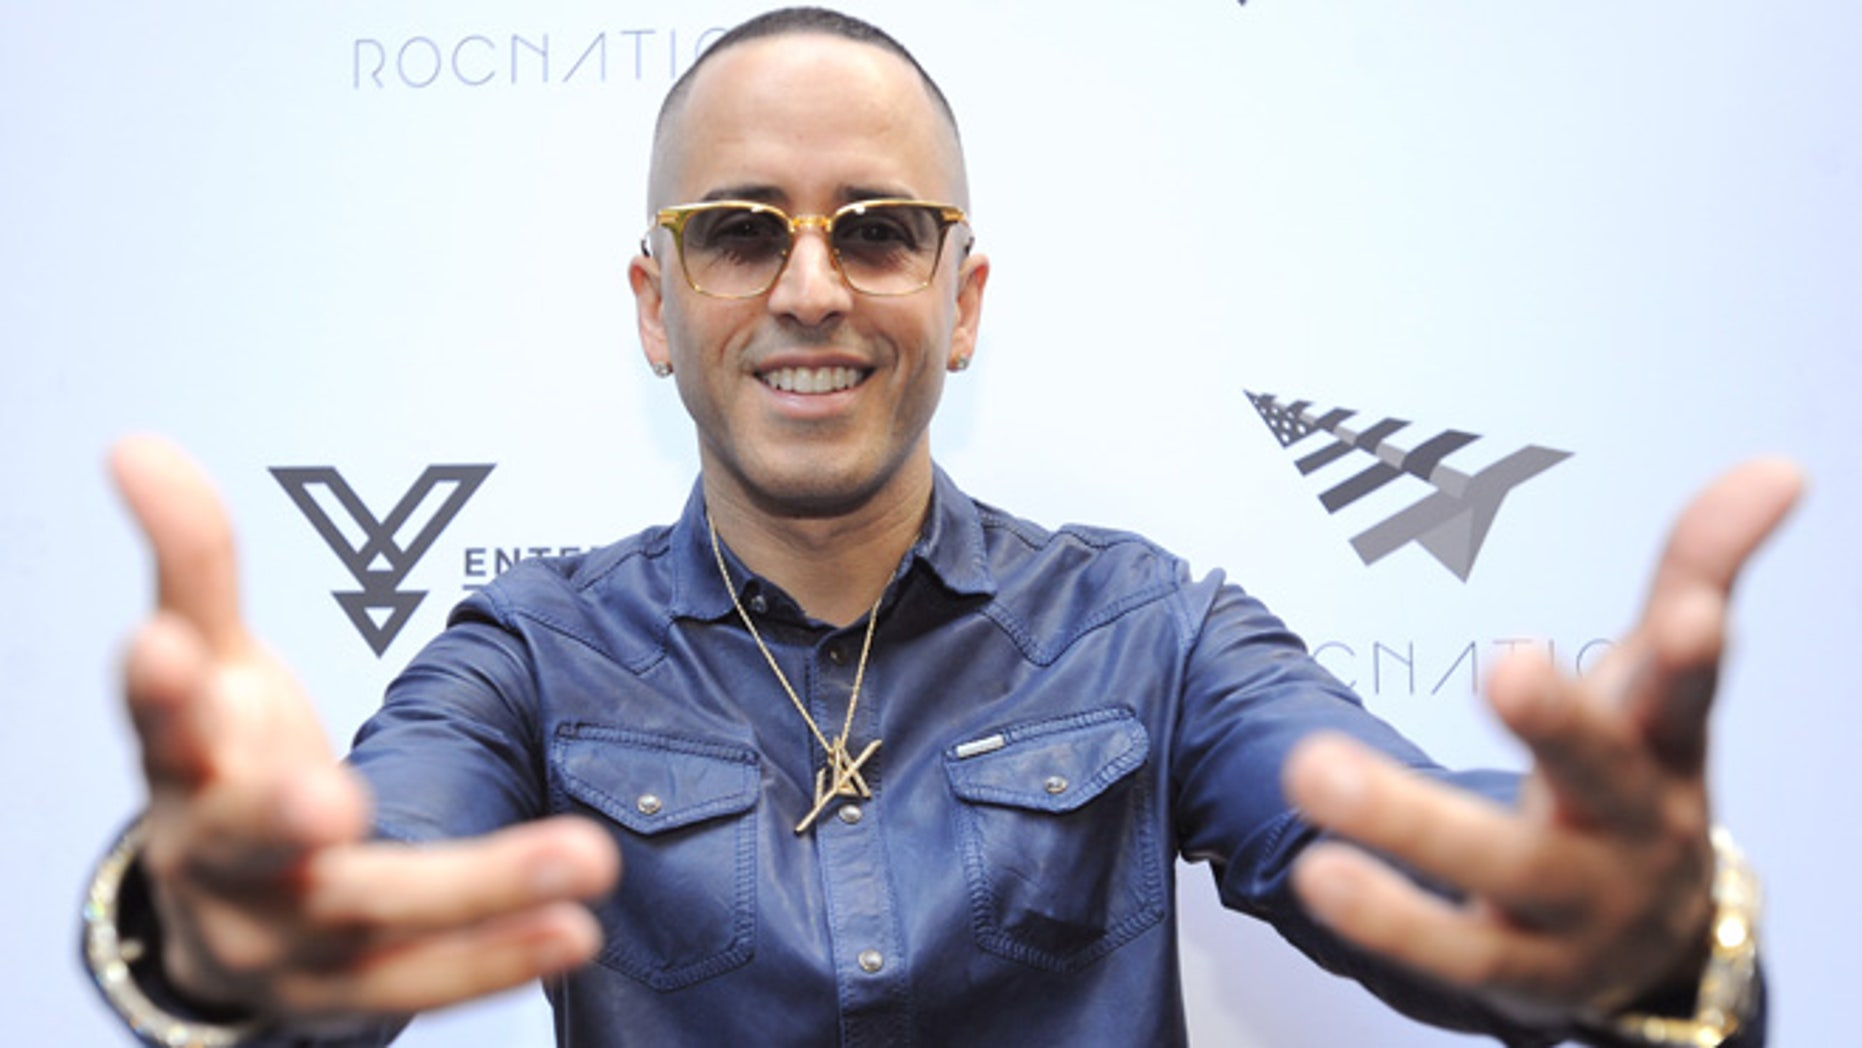 NEW YORK, NY - JUNE 12:  Yandel celebrates the Puerto Rican Day Parade at China Grill on June 12, 2016 in New York City.  (Photo by Brad Barket/Getty Images for Roc Nation)